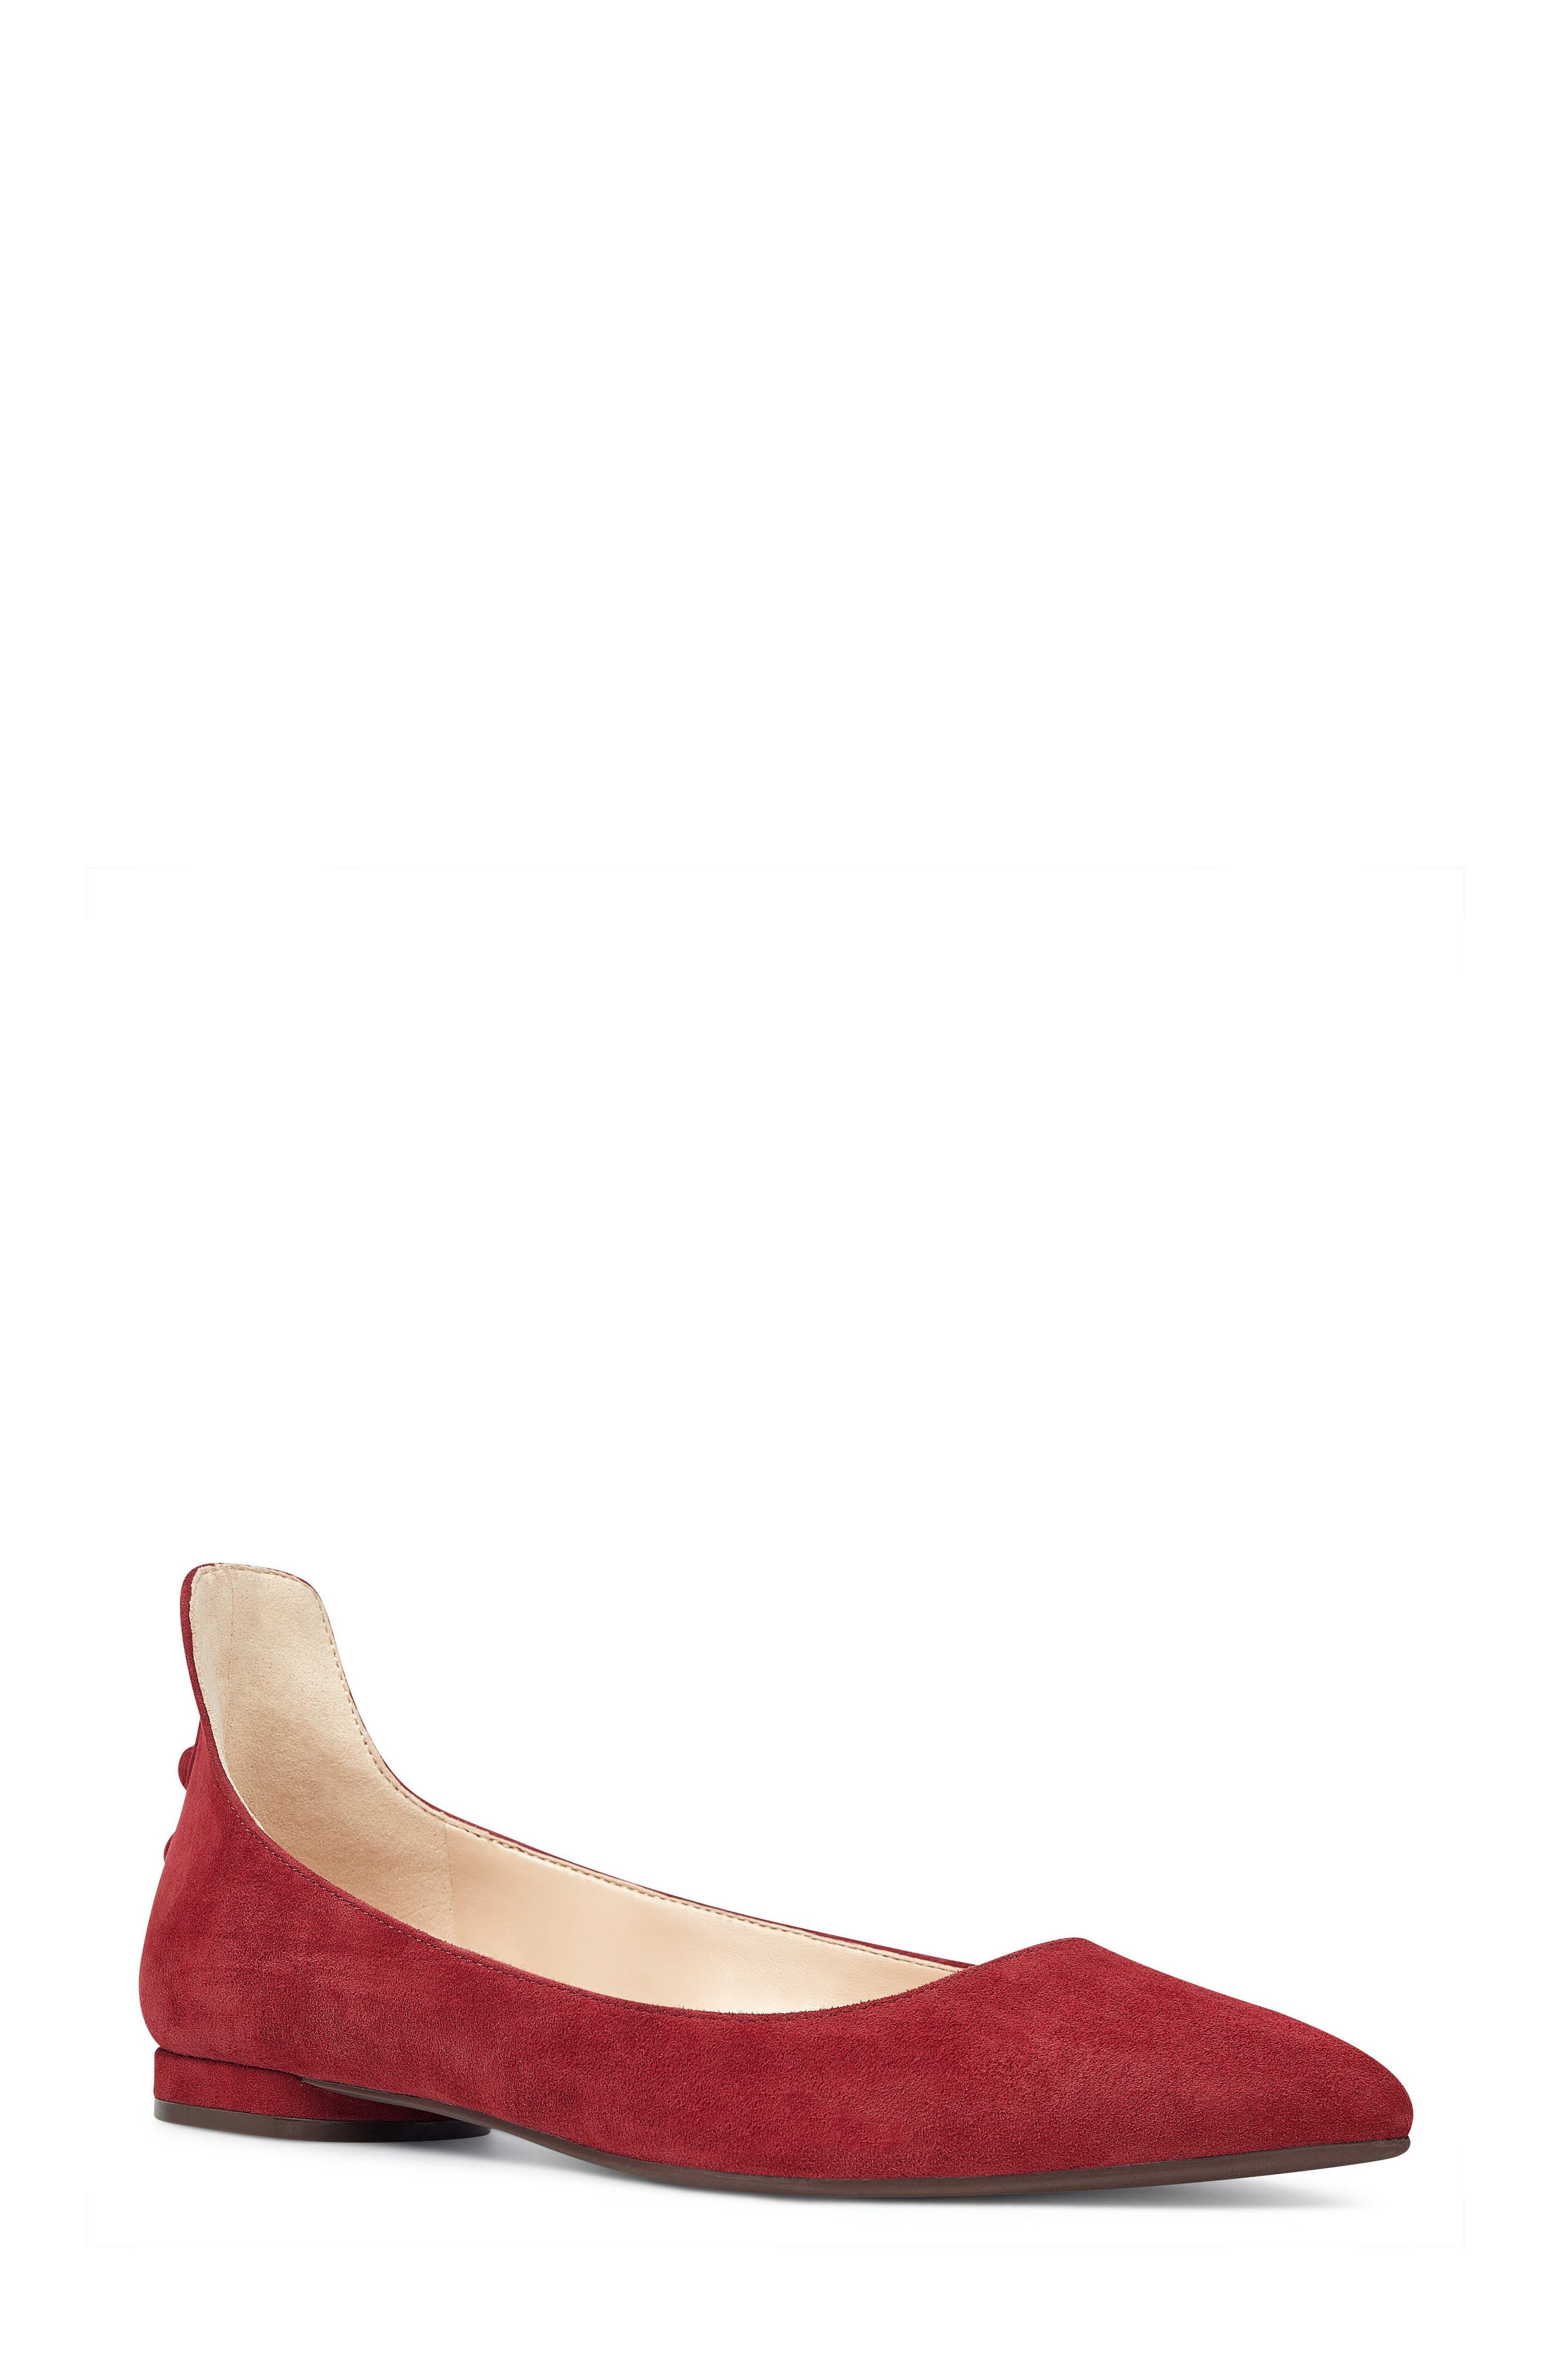 Owl Skimmer Flat,                         Main,                         color, Red Suede